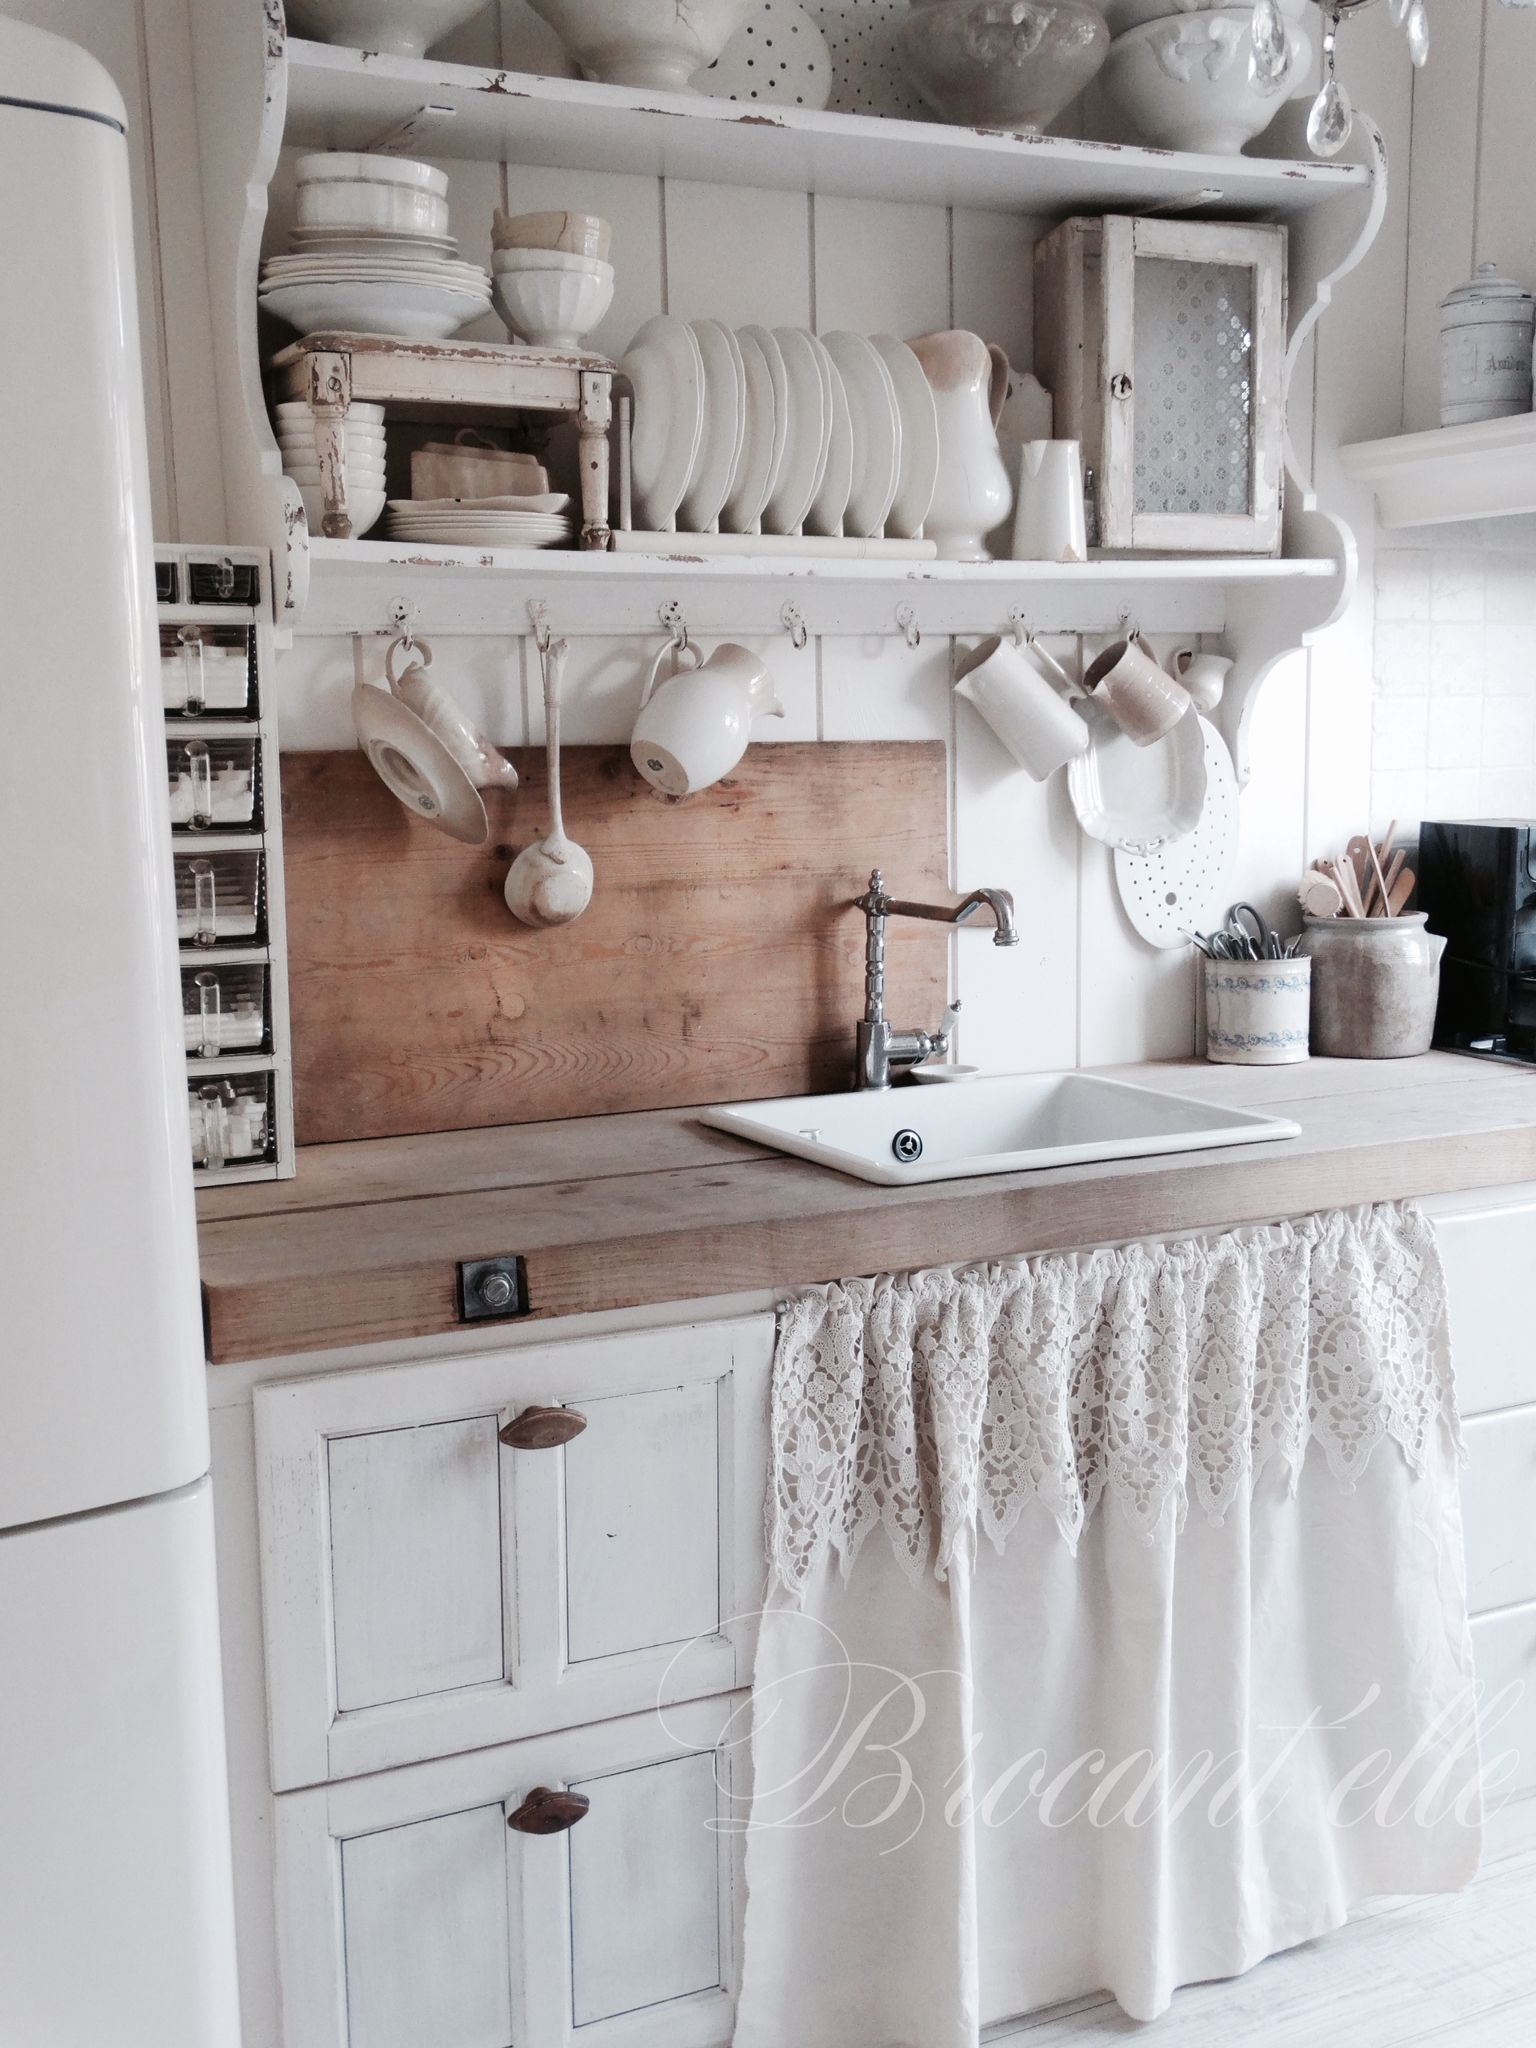 If I Had An Old Farmhouse This Is Exactly What D Do The Curtain Covering So Quaint Kitchen Cabinets